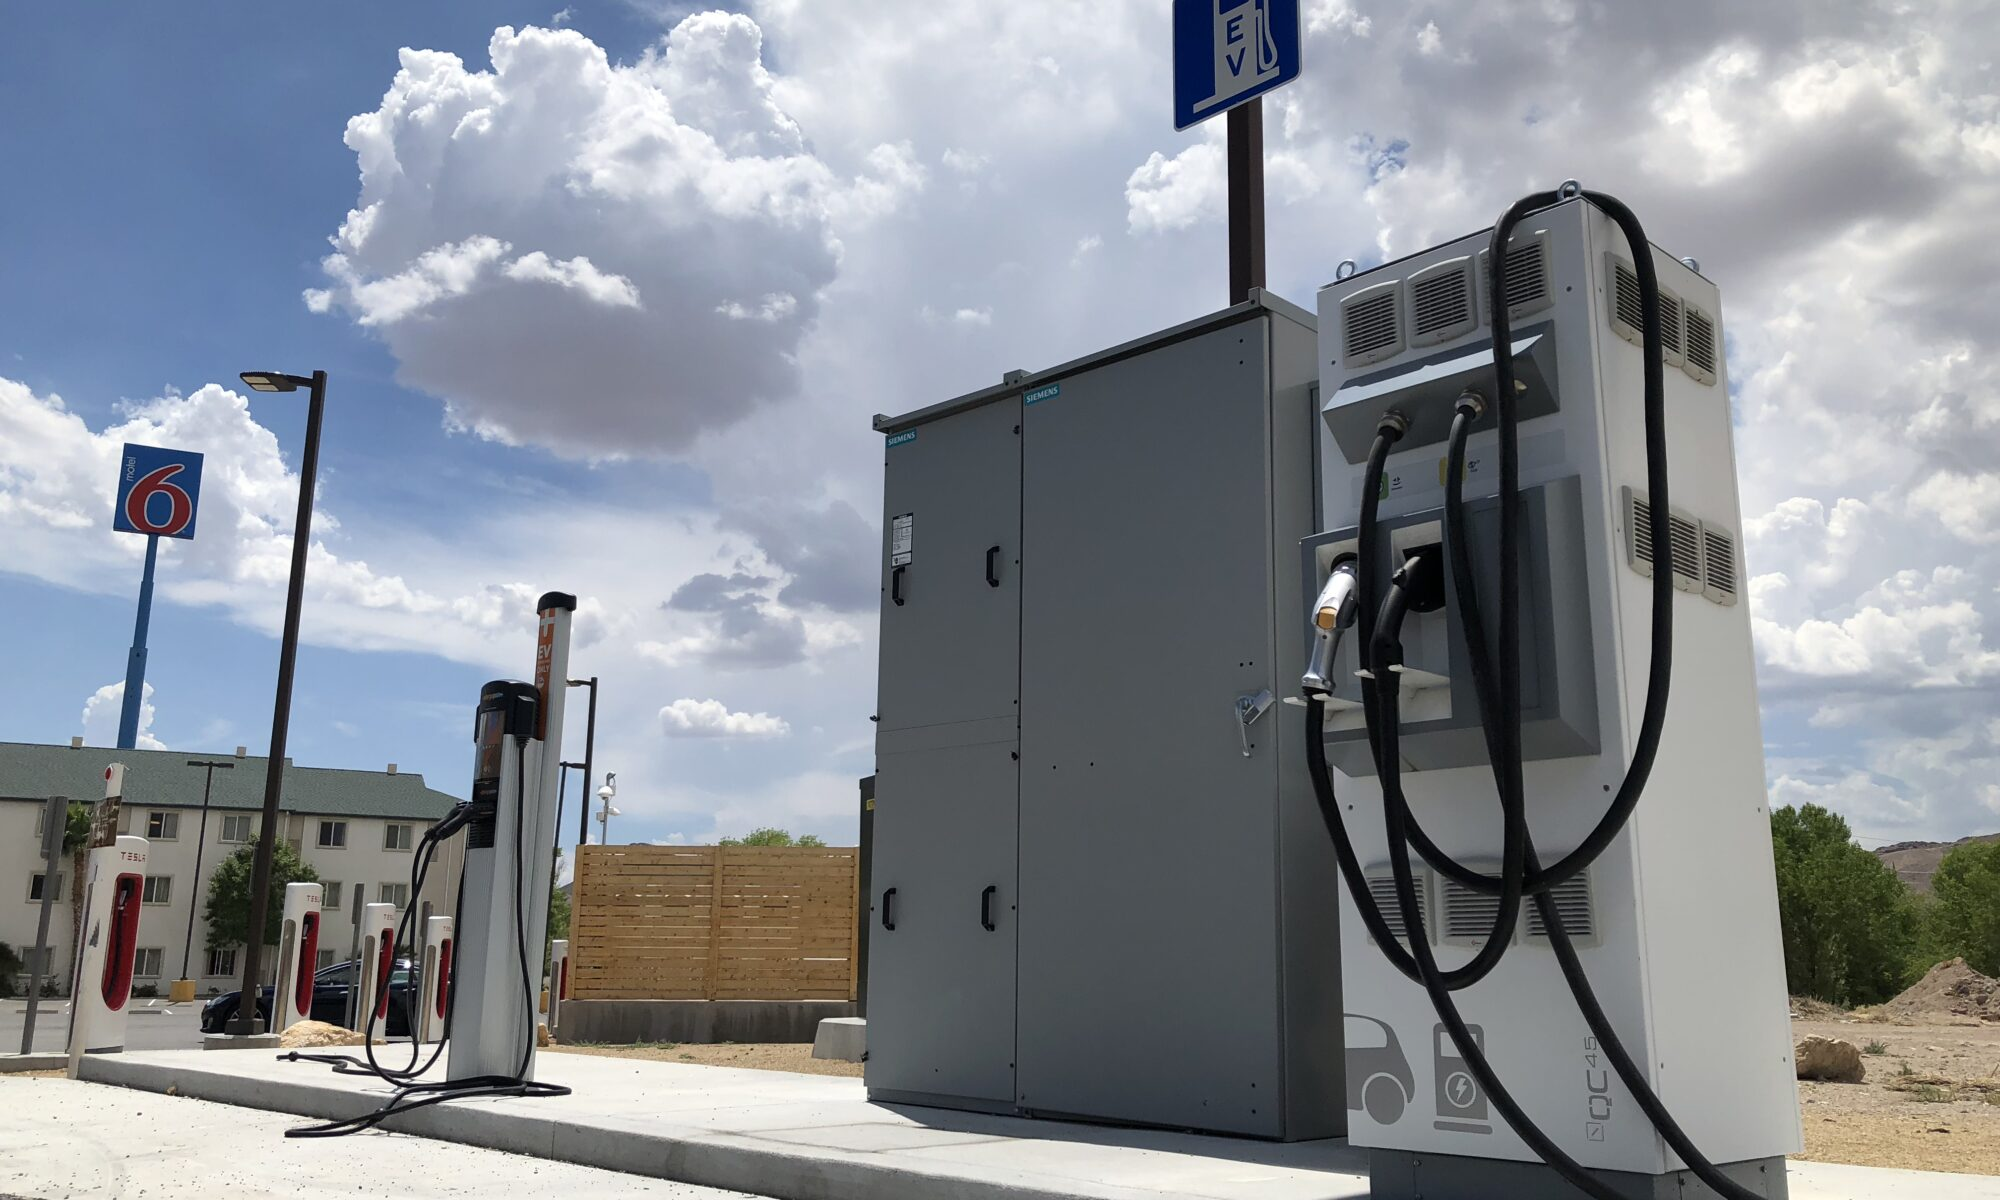 Indy Video: Electric vehicle charging station installed on highway linking Las Vegas to Southern California